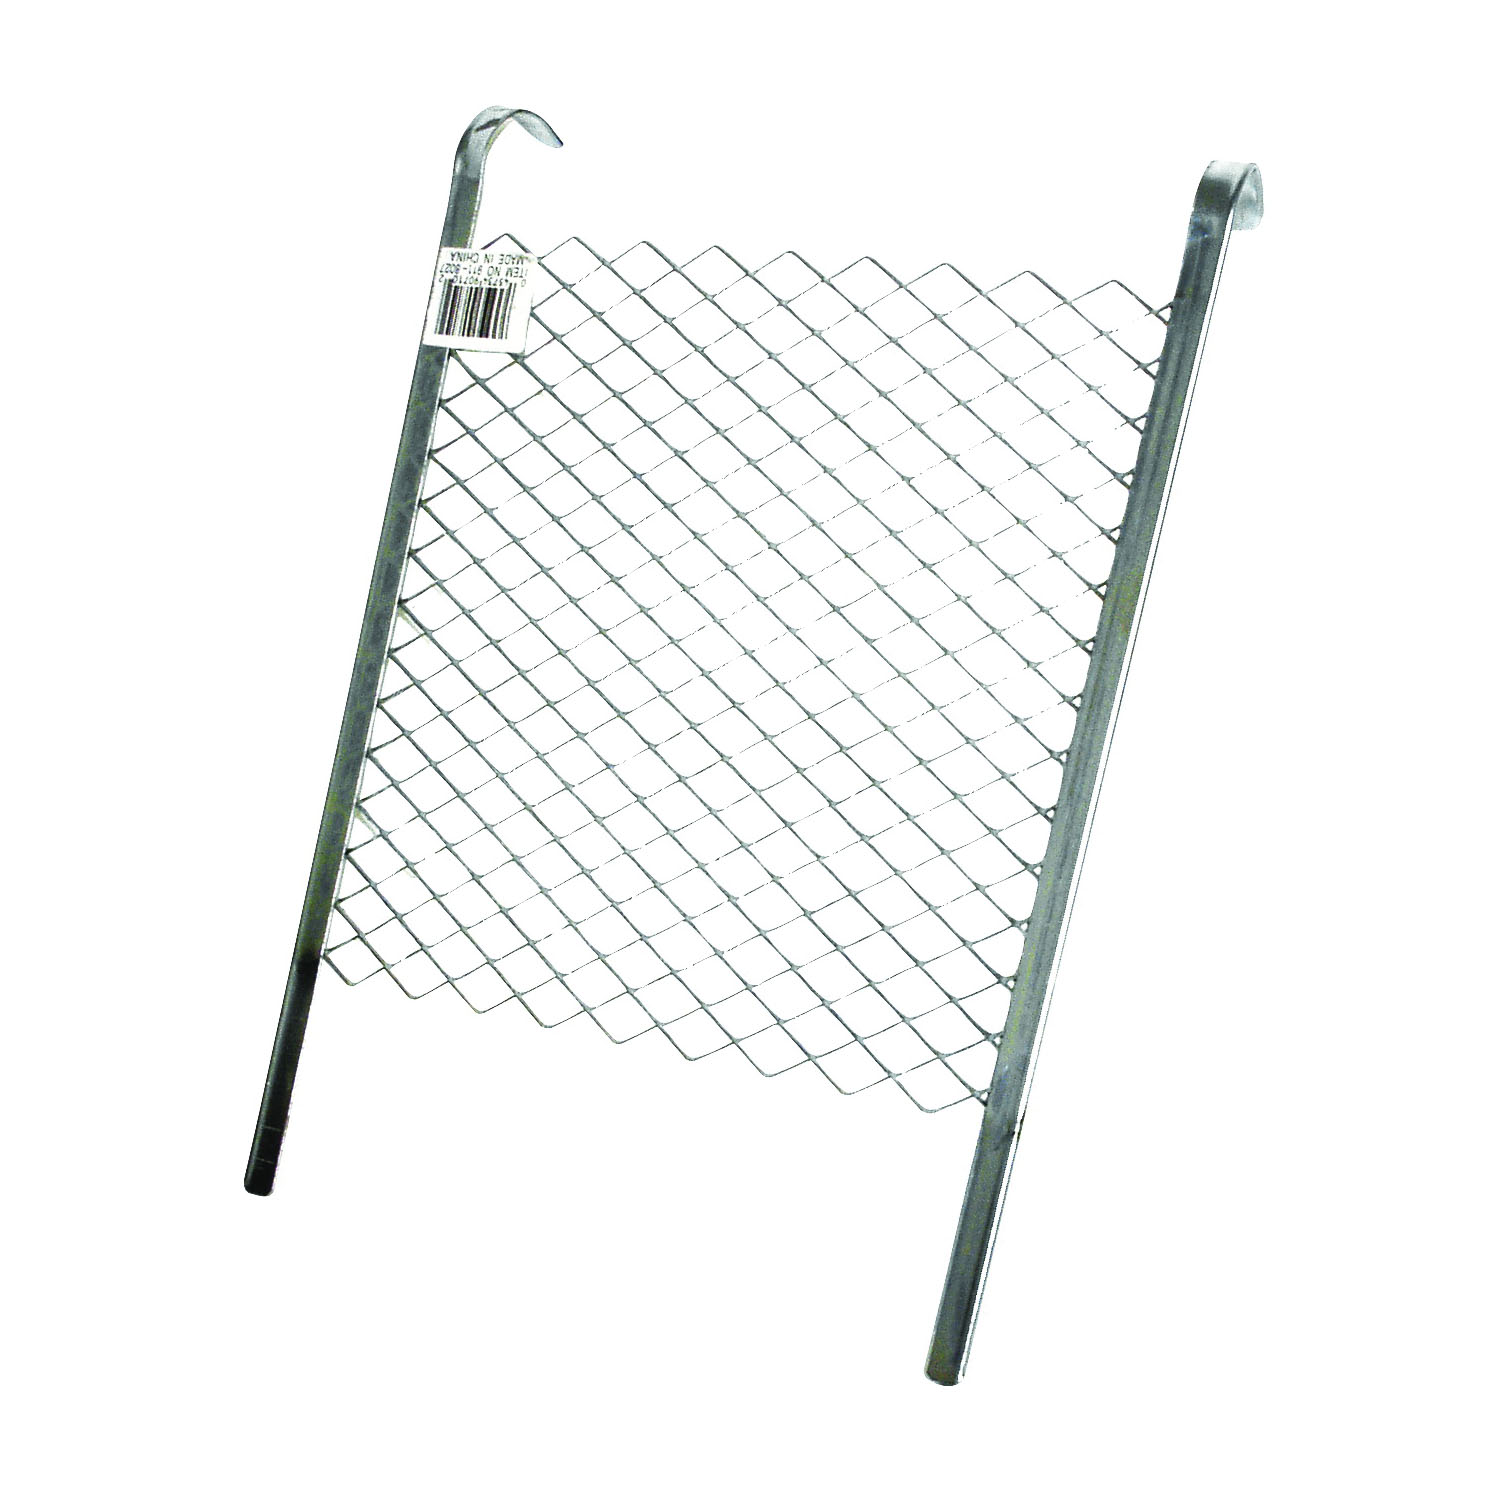 Picture of ProSource CW921 Paint Bucket Grid, 13 in L, 10 in W, Galvanized